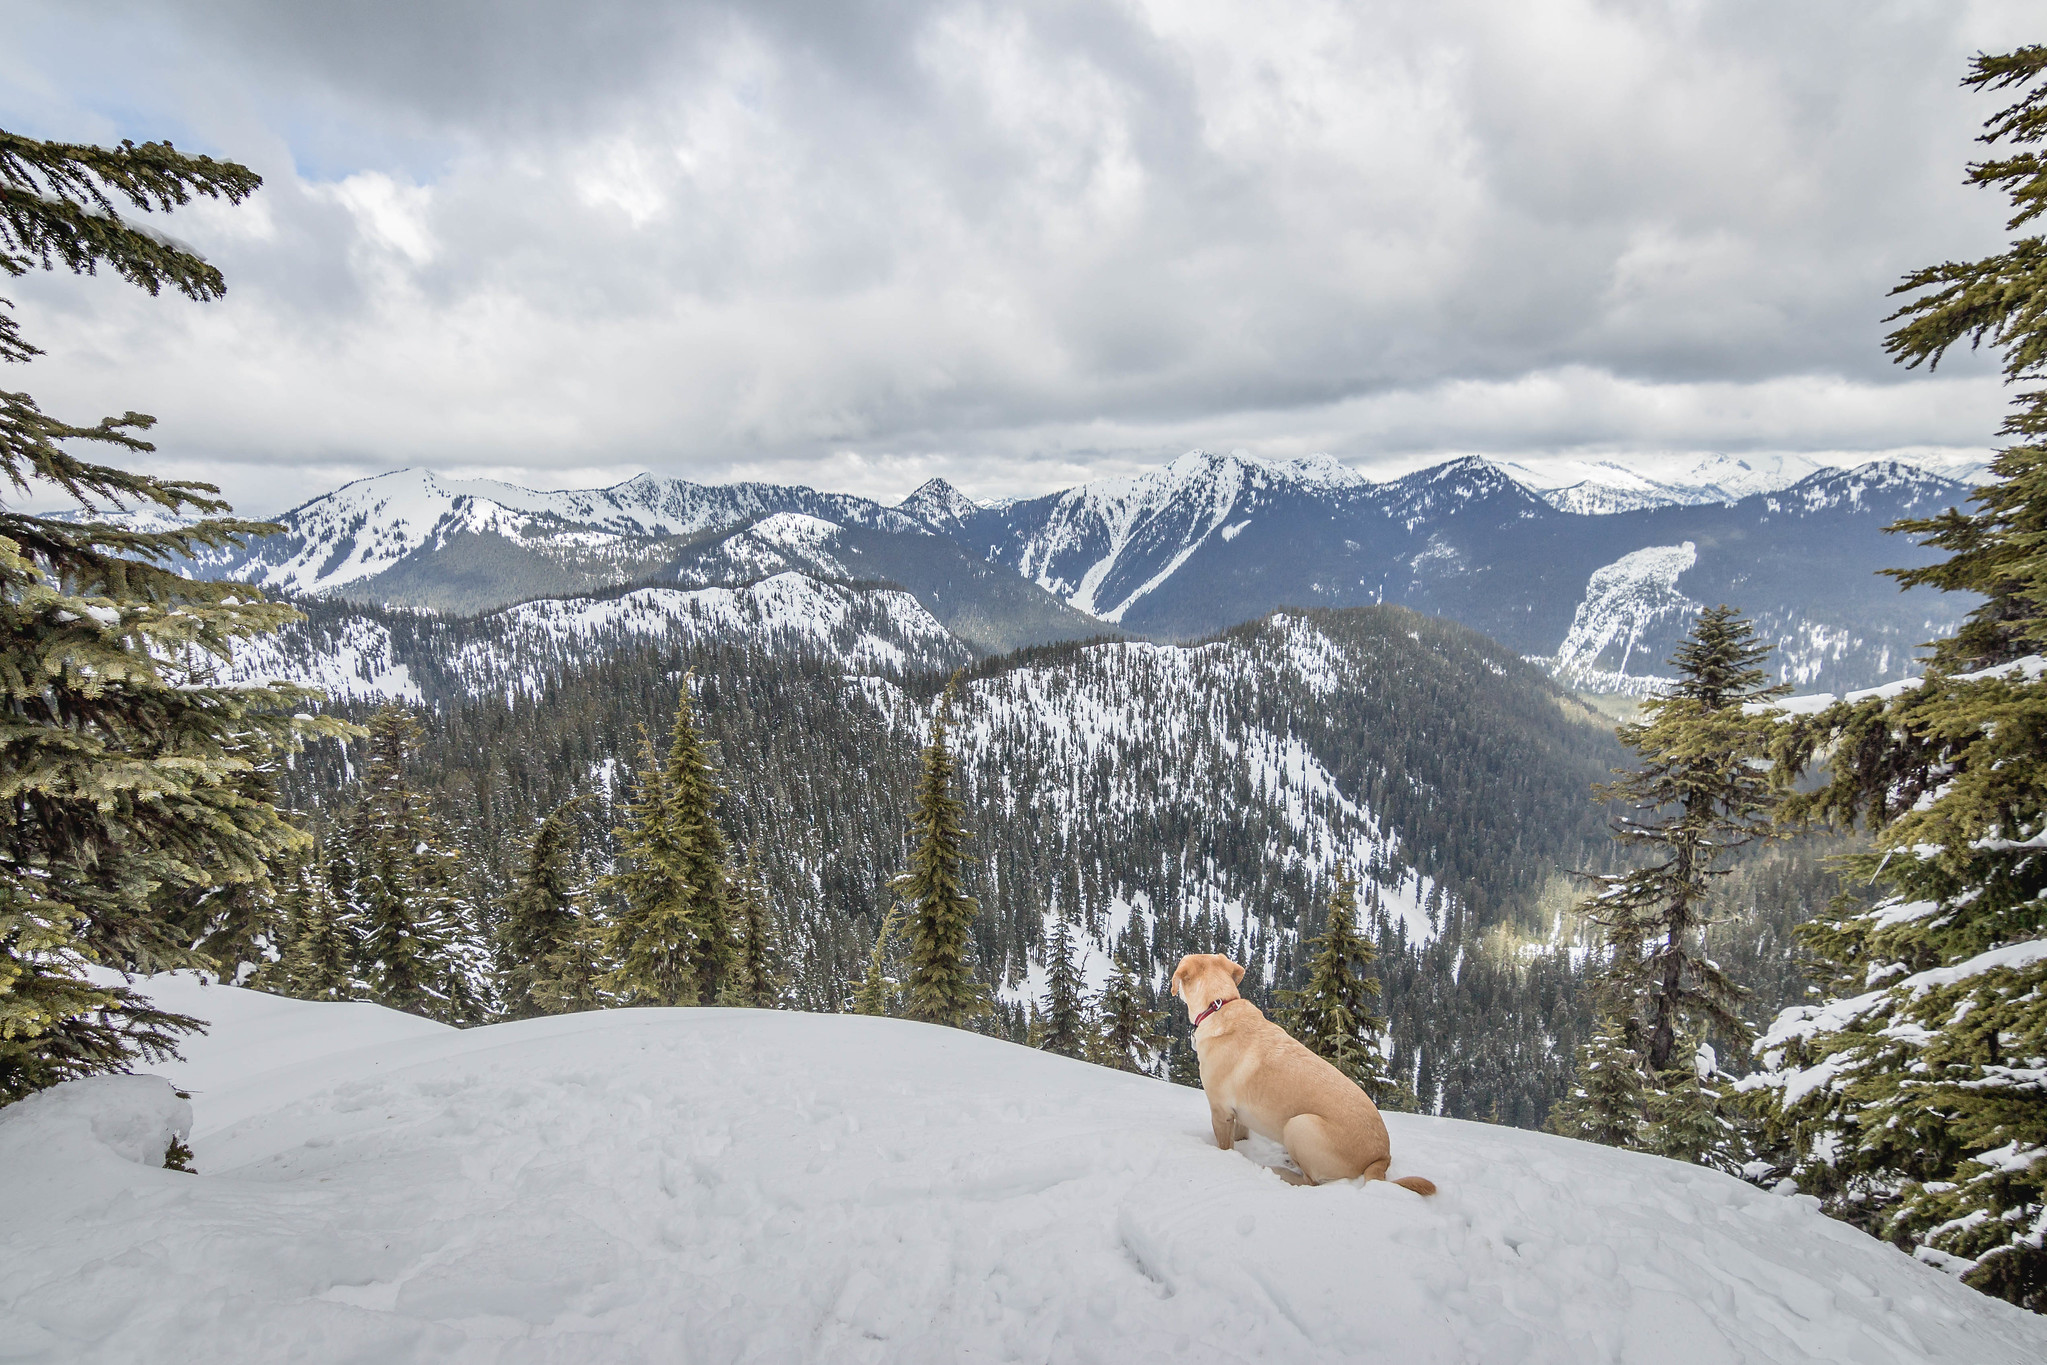 Summit dogs on Nason Ridge Peak #3